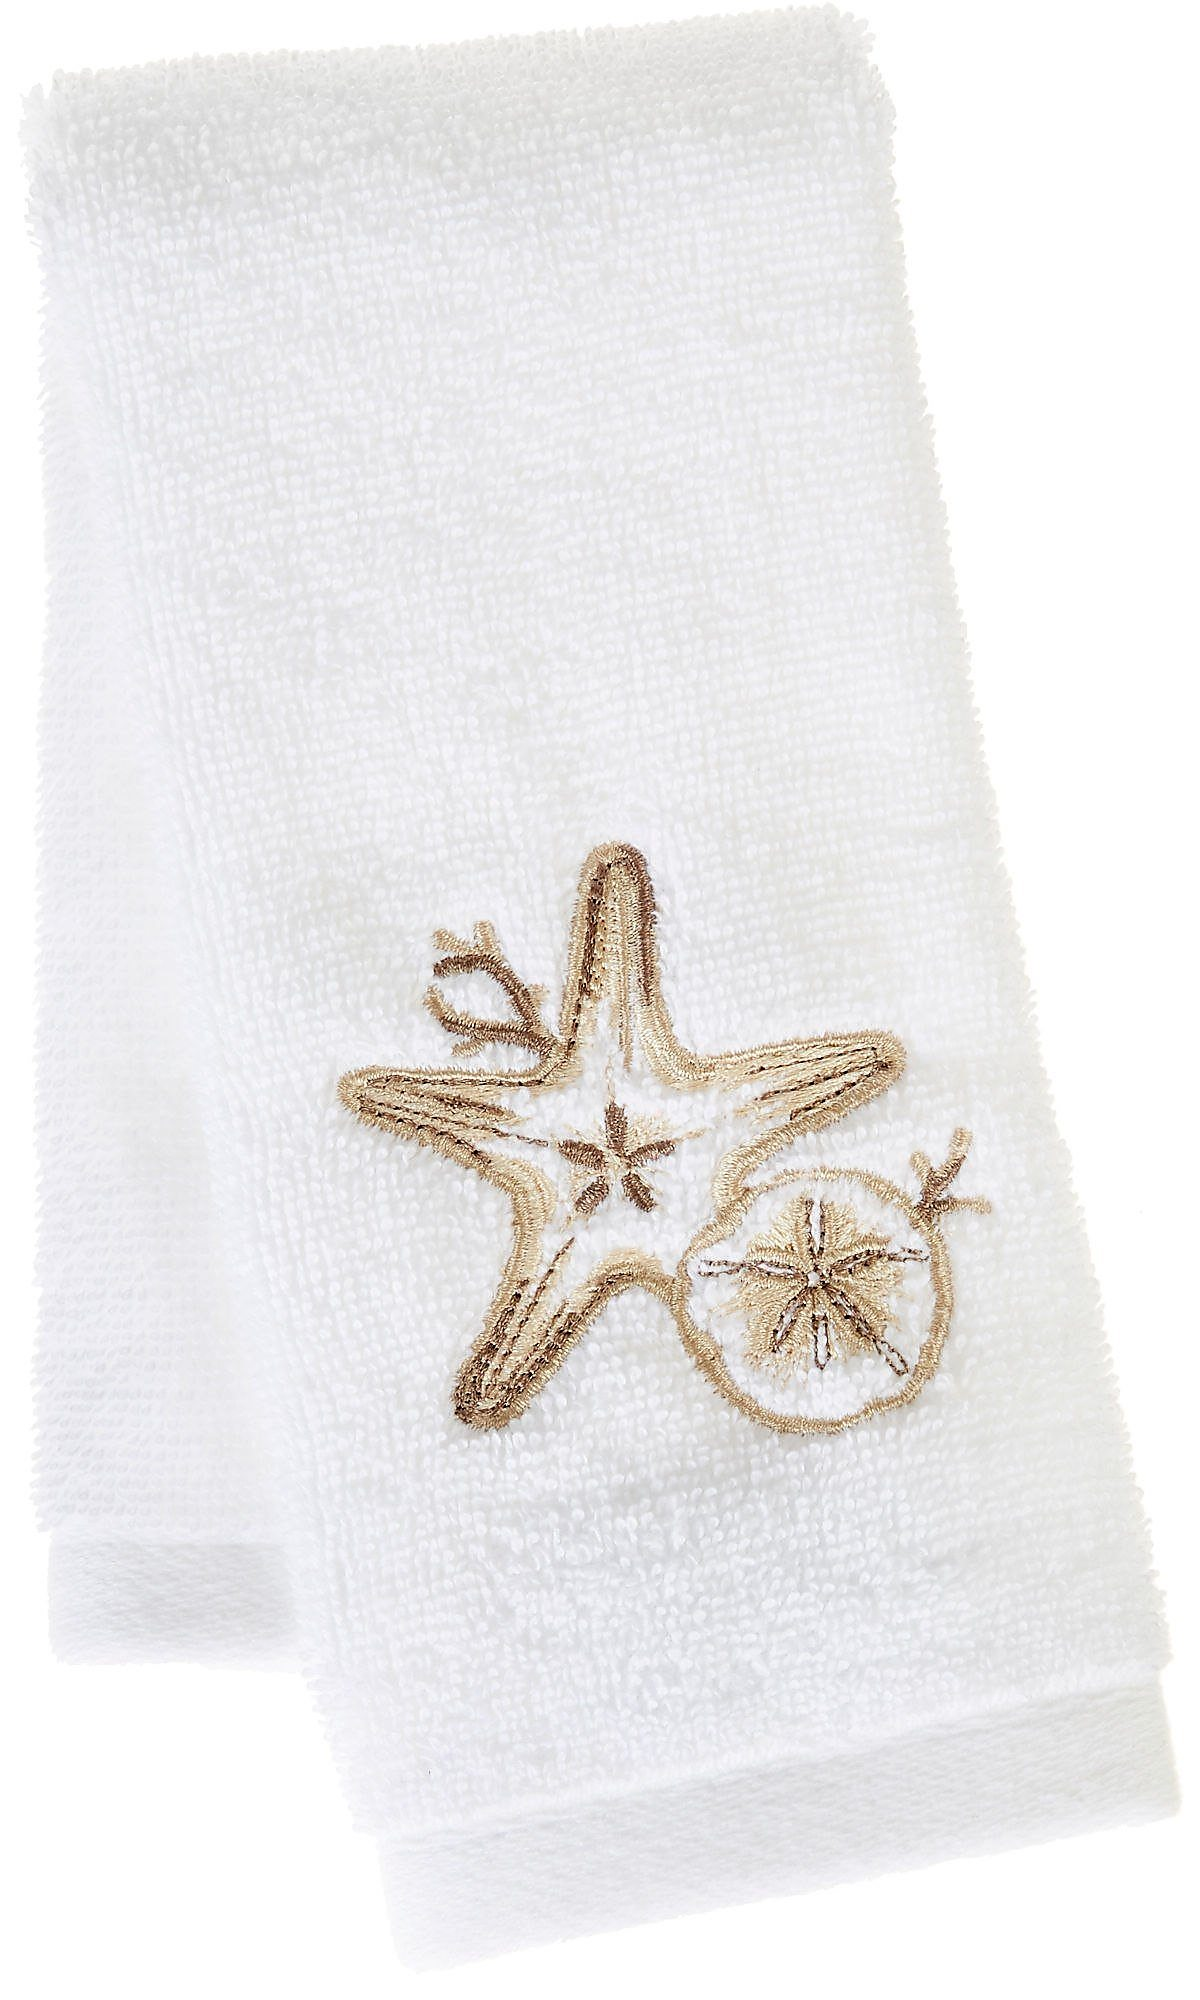 Details About Coastal Home Embroidered Sag Harbor Bath Towel Collection